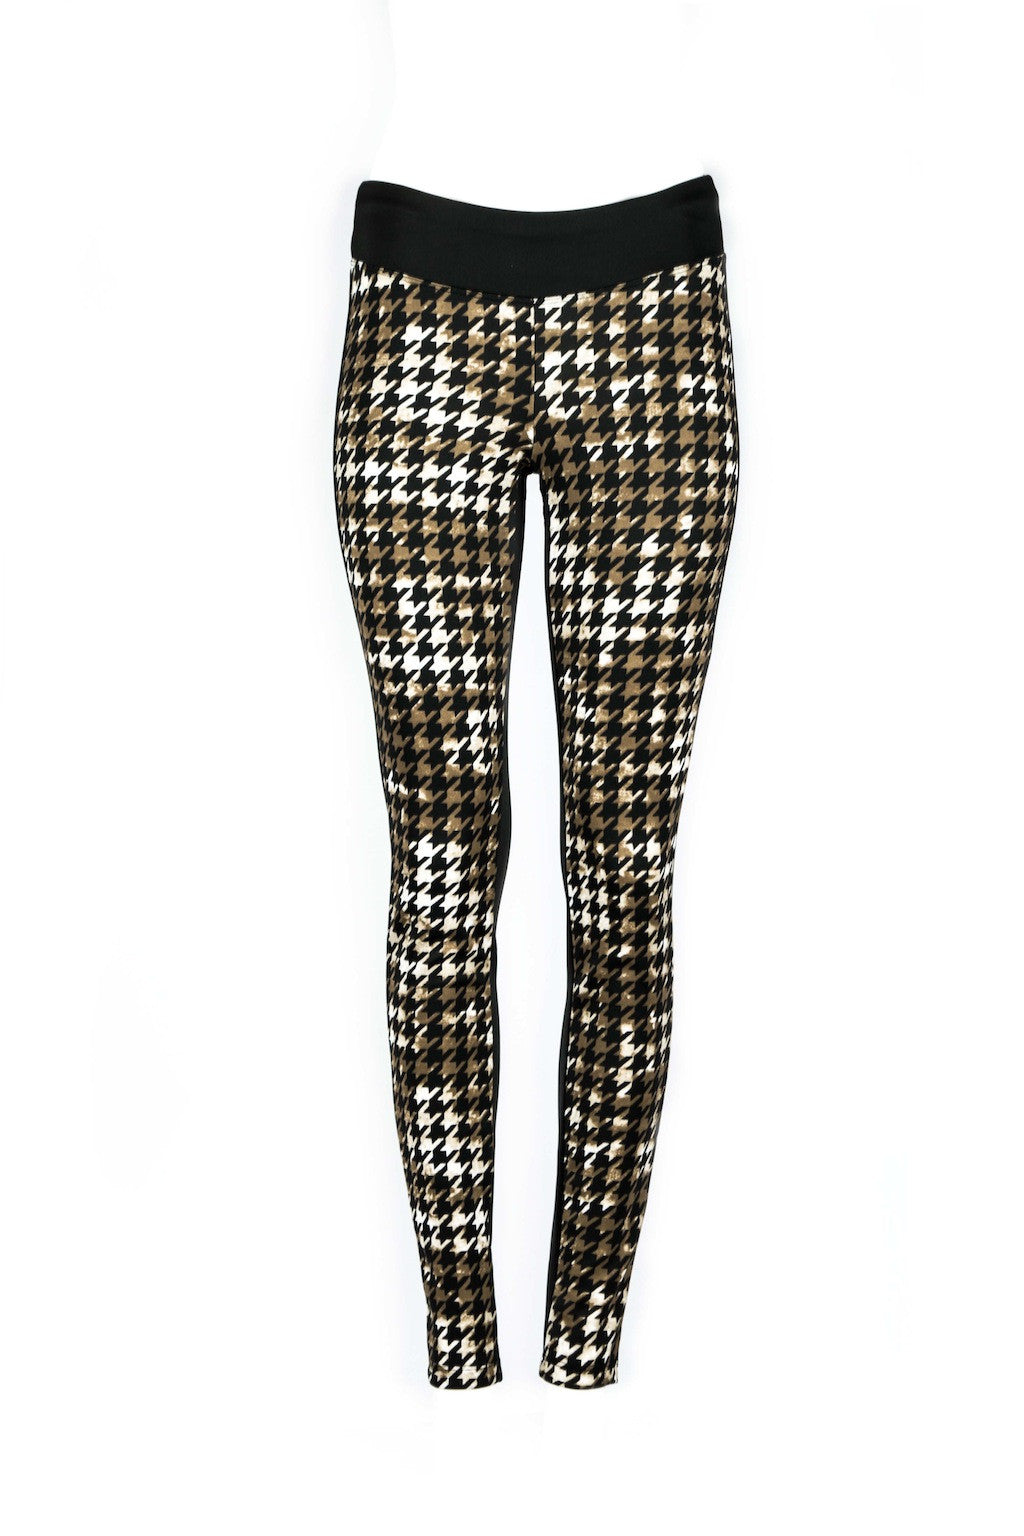 Kylie Houndstooth Color Block Pants - ANA MARIA KIM  - 5